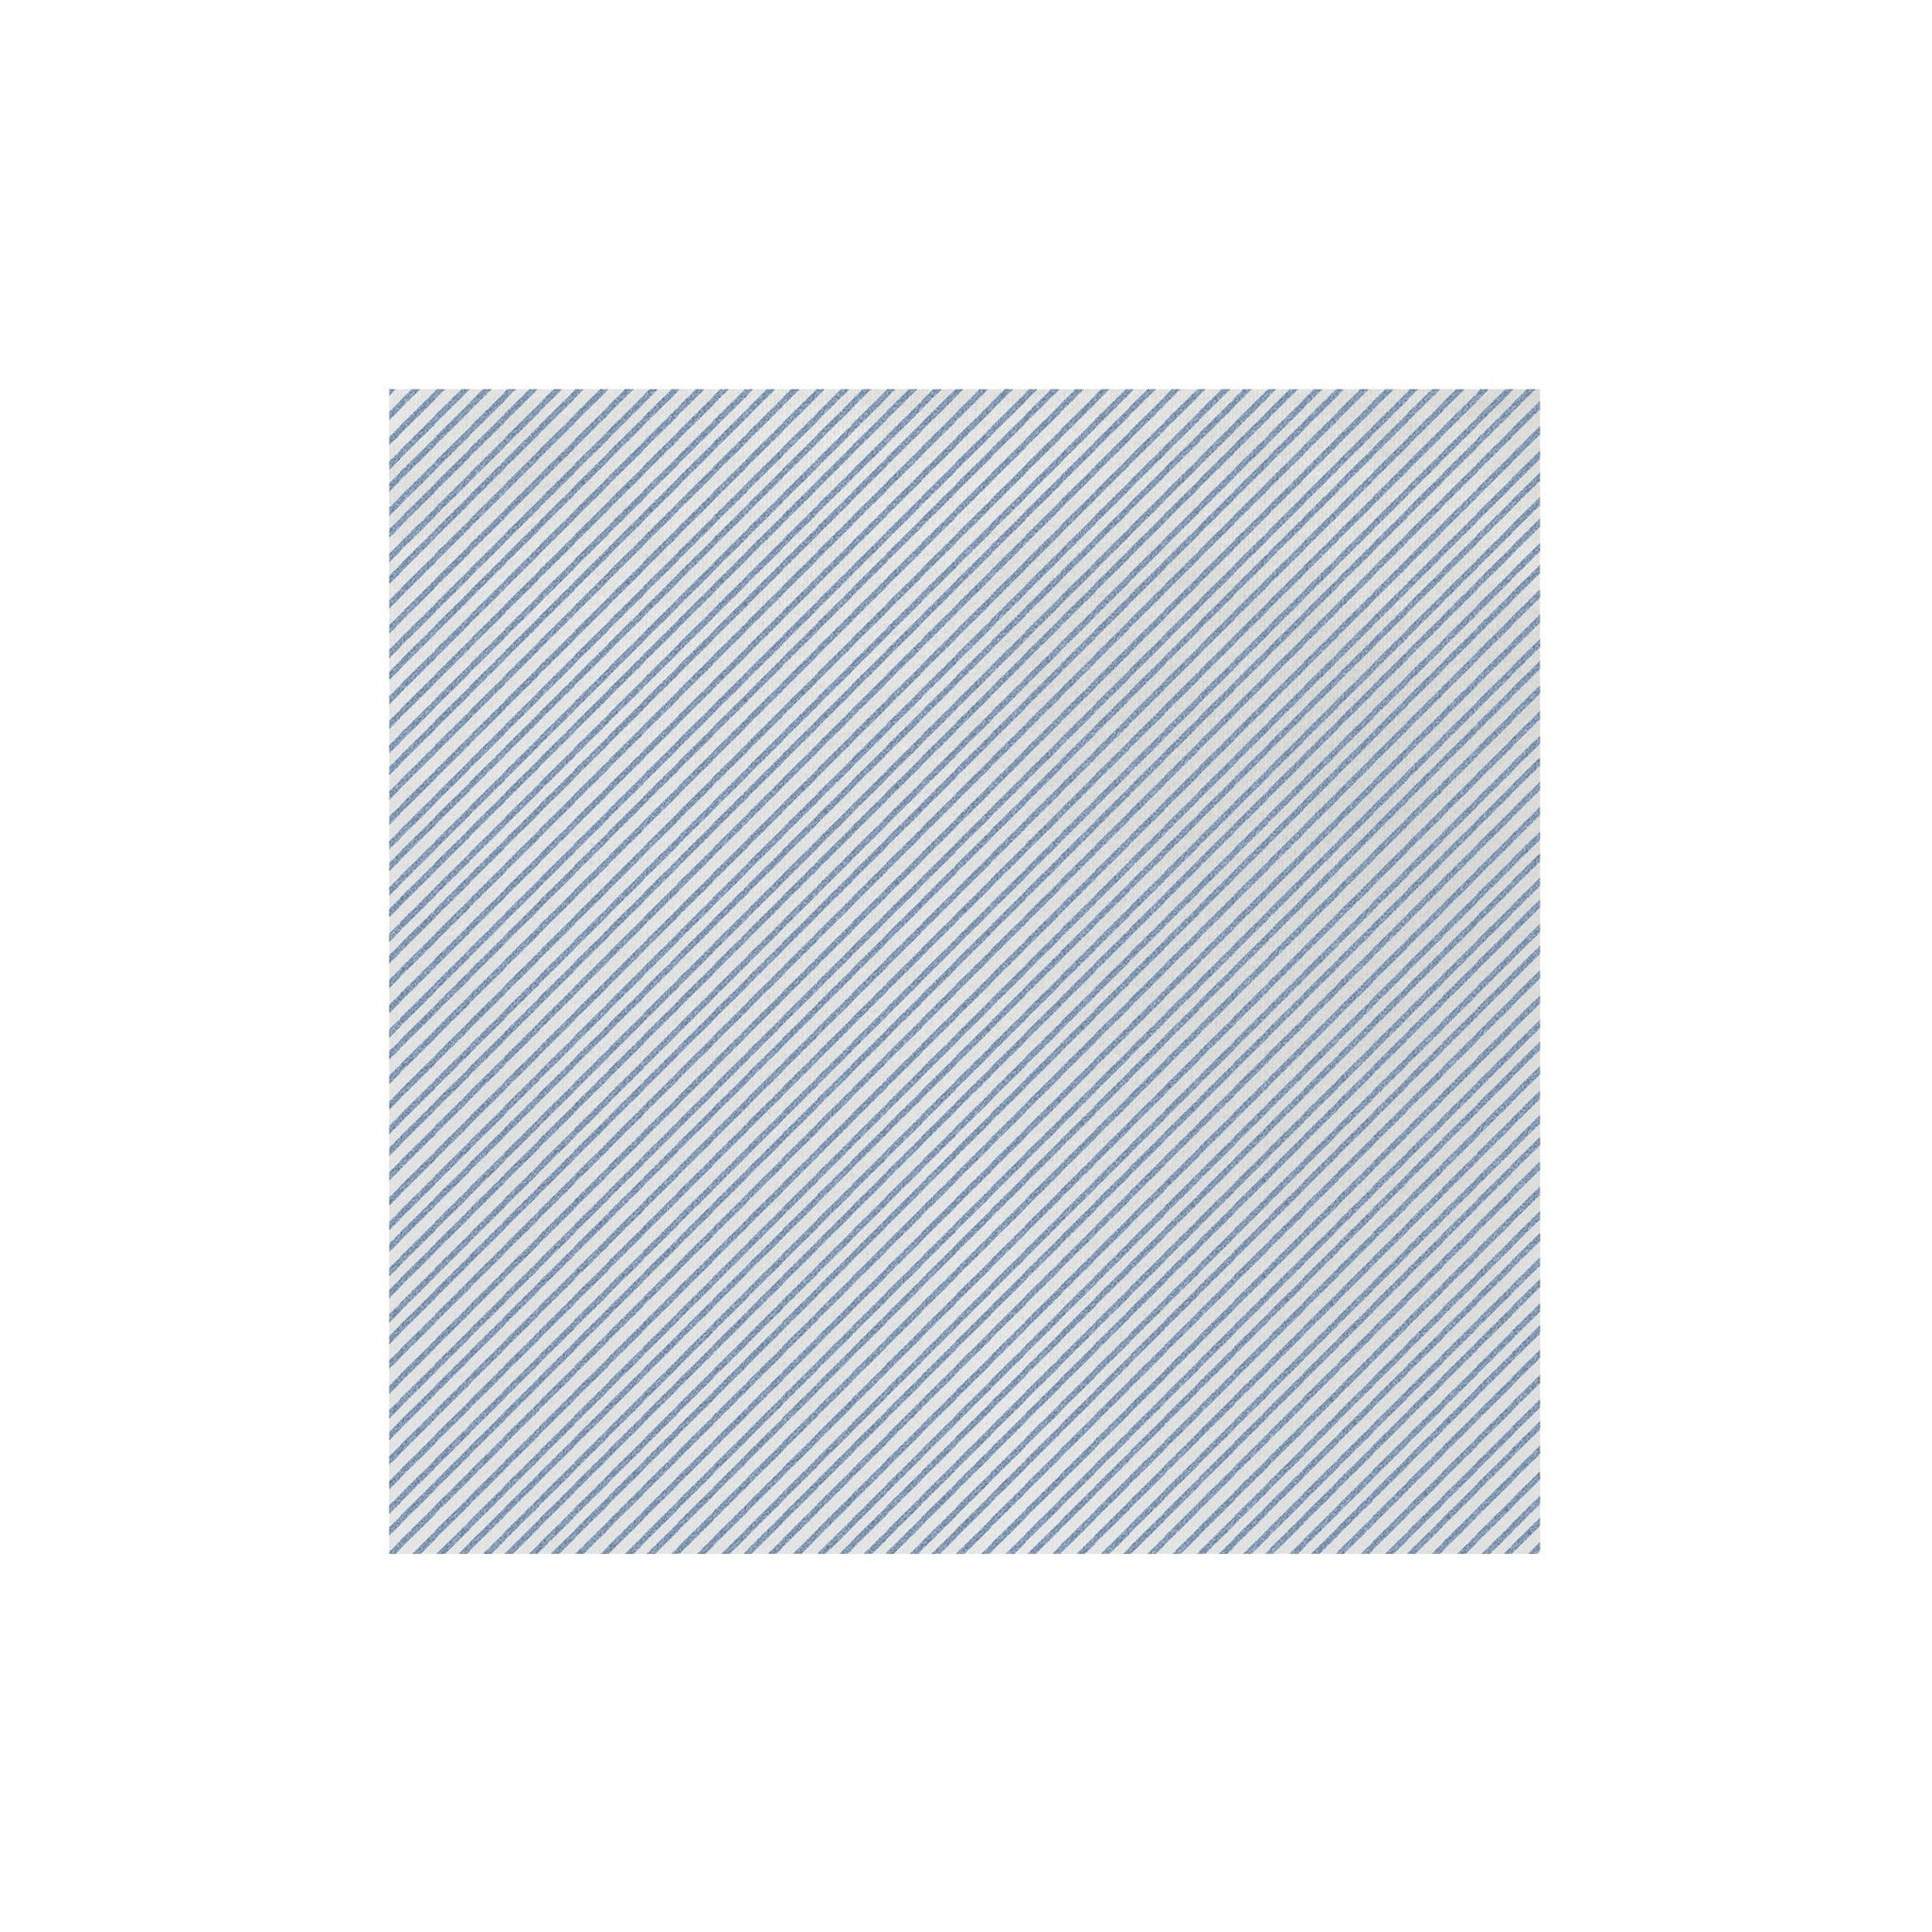 Papersoft Napkins Seersucker Stripe Dinner Napkins (Pack of 20)